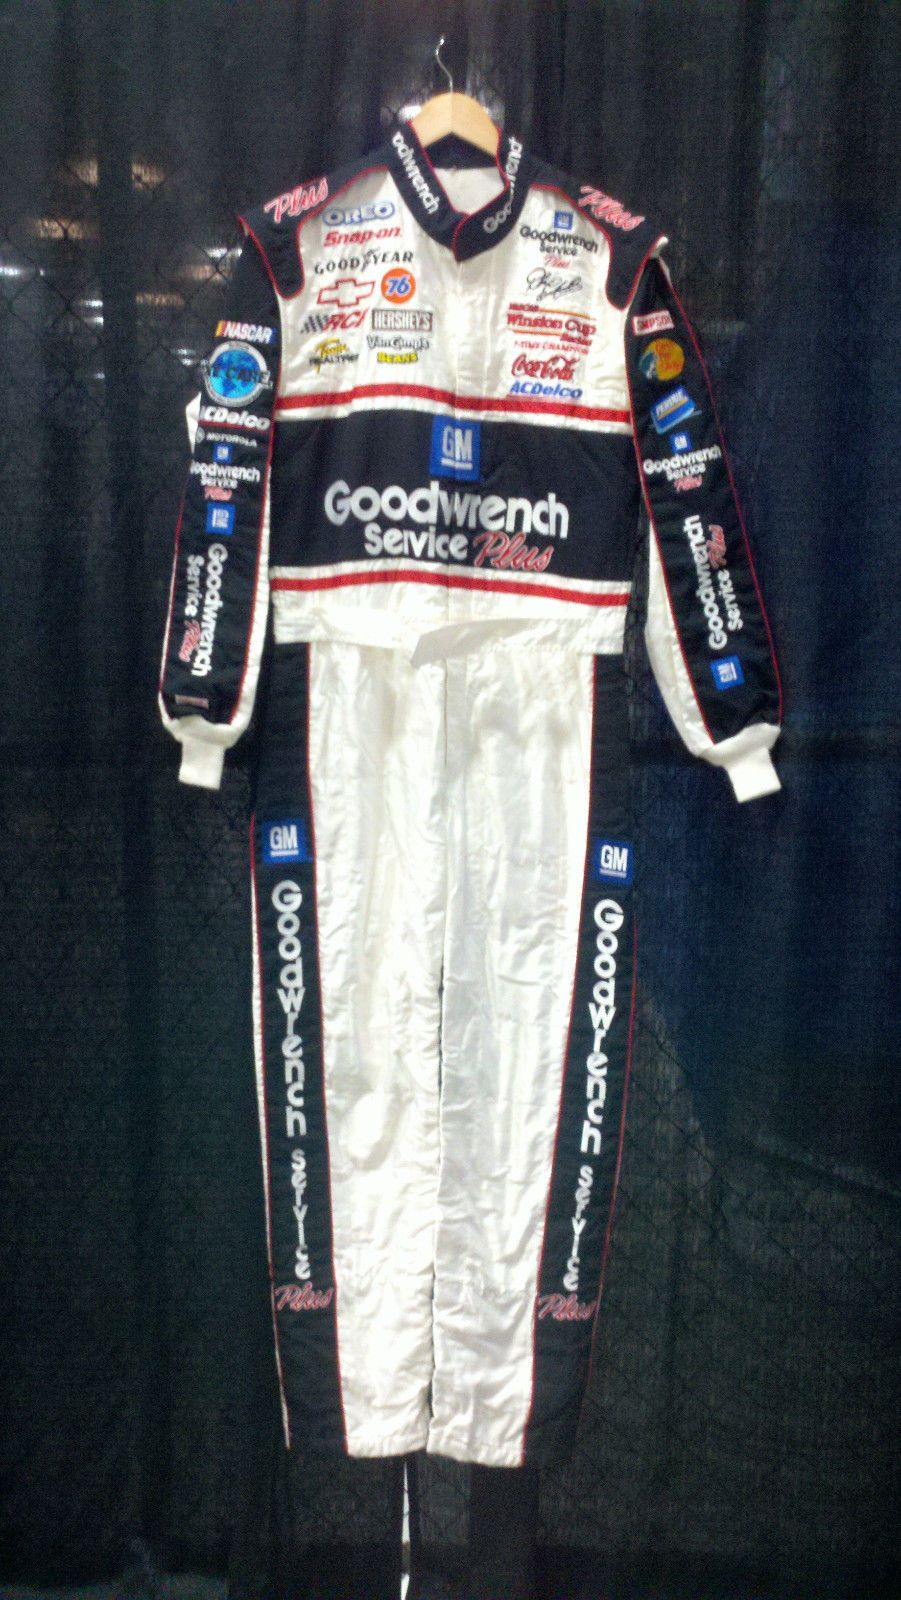 68b14959173 Real Dale Earnhardt Sr 2001 GM Goodwrench Driver Suit Firesuit Uniform  Daytona